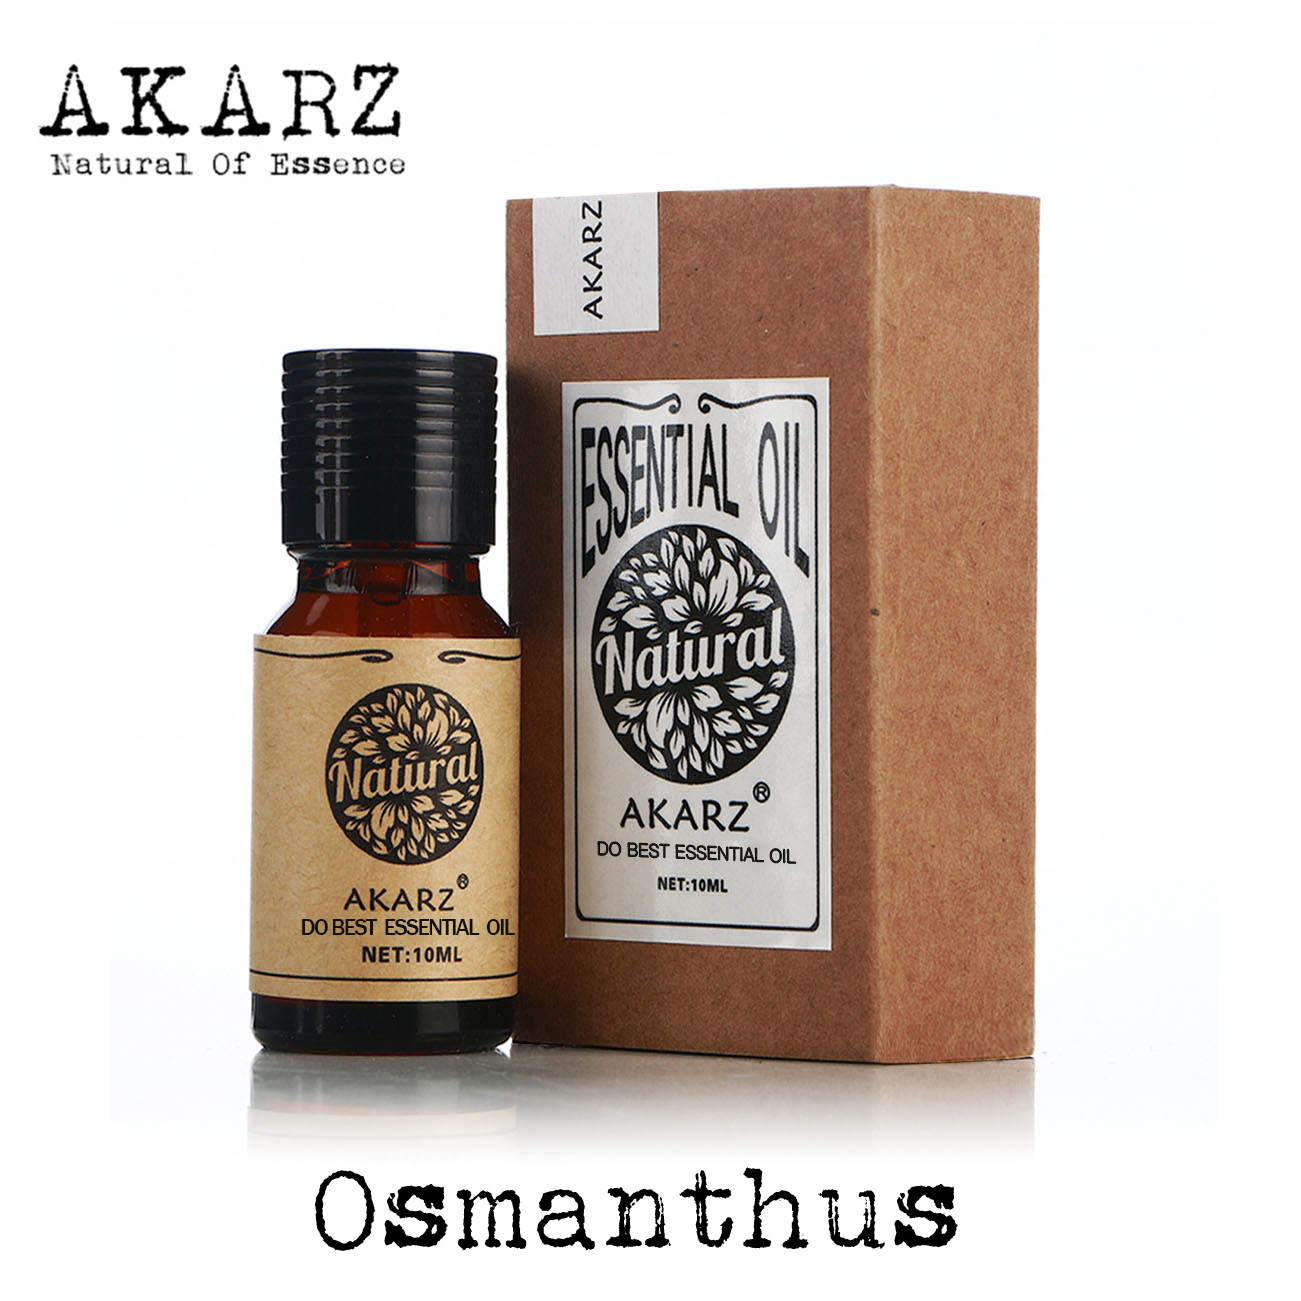 Osmanthus essential oil AKARZ Top Brand body face skin care spa message fragrance lamp Aromatherapy Osmanthus oil image